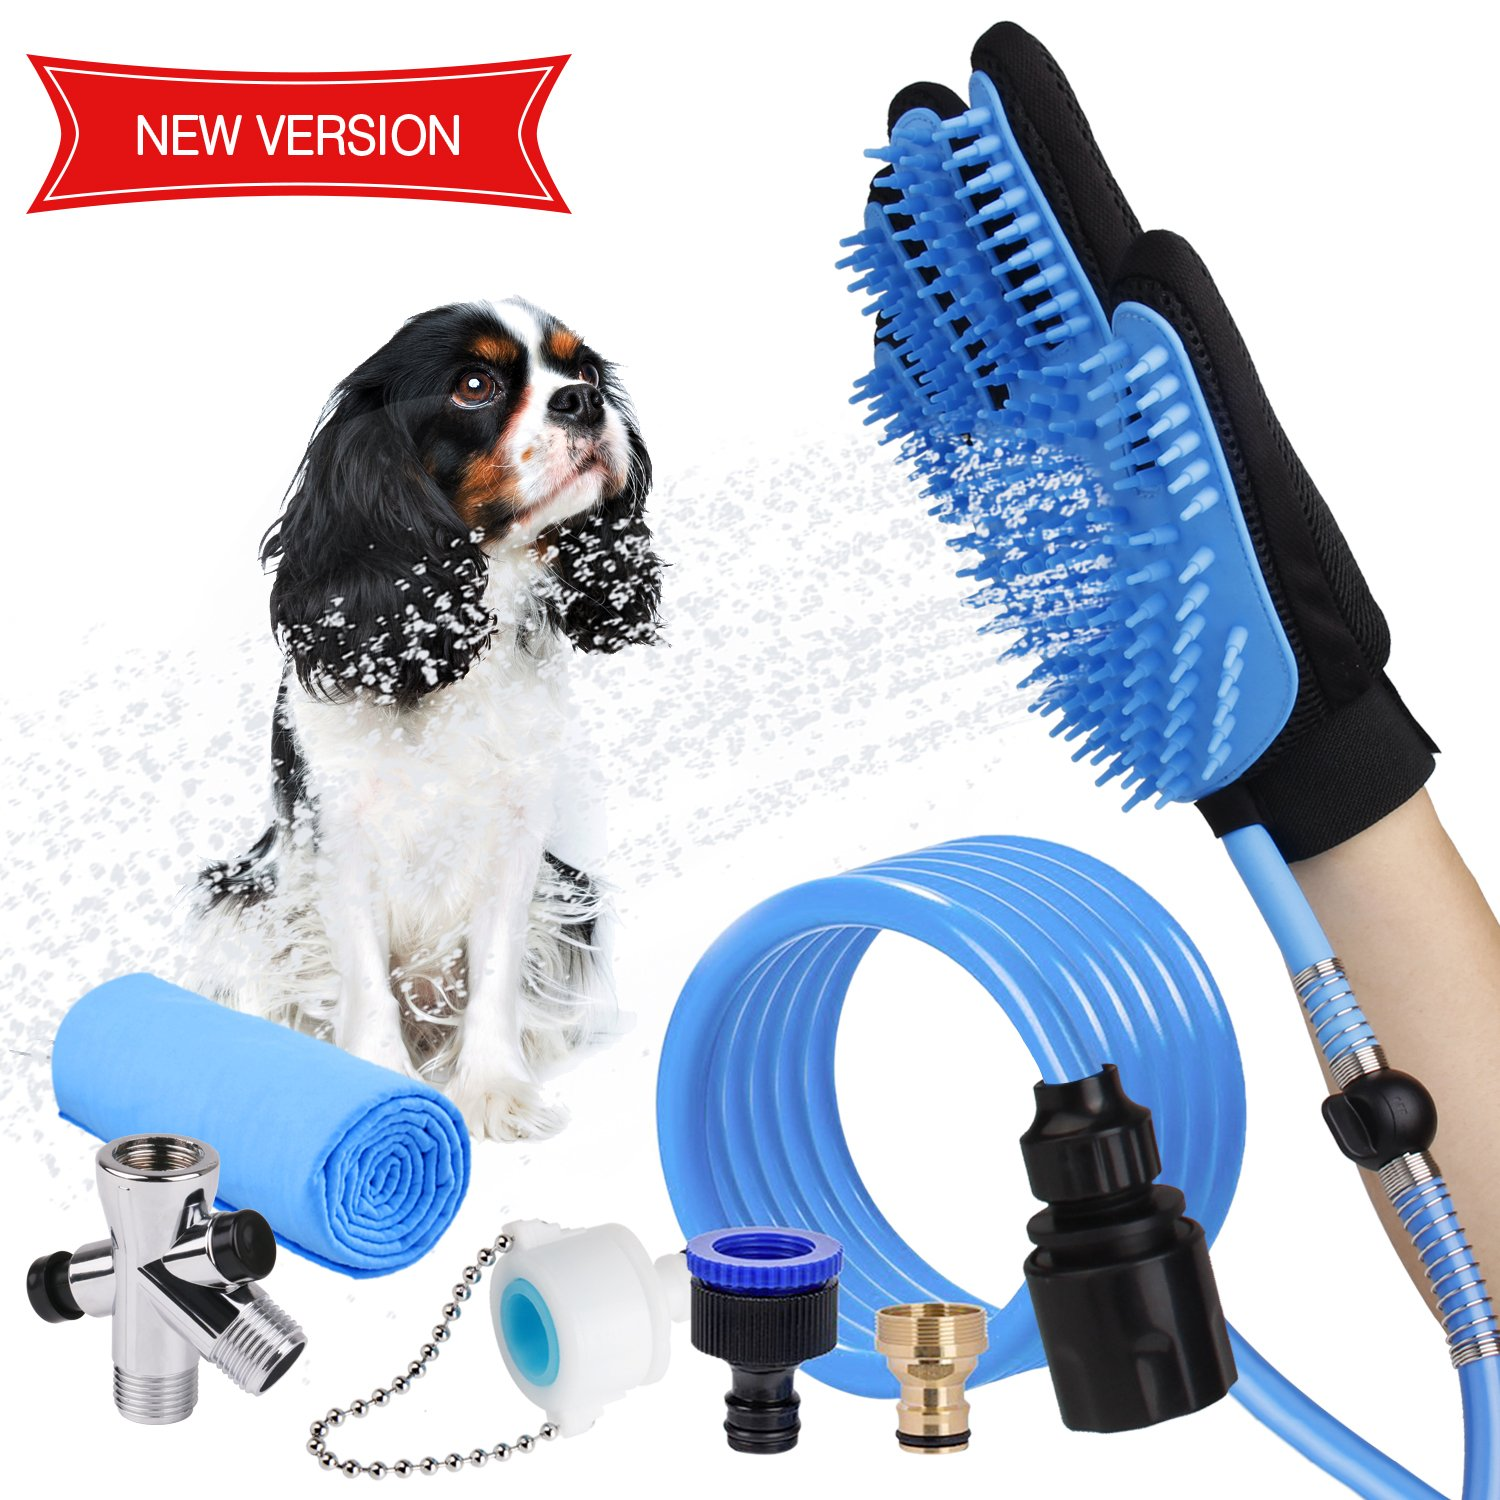 WOWGO NEWEST 4 in 1 Pet Shower Kit with FREE Towel, Pet Shower Sprayer for Dog and Cat Bathing Massage, Shower Attachment with Diverters for Indoor & (blue new)